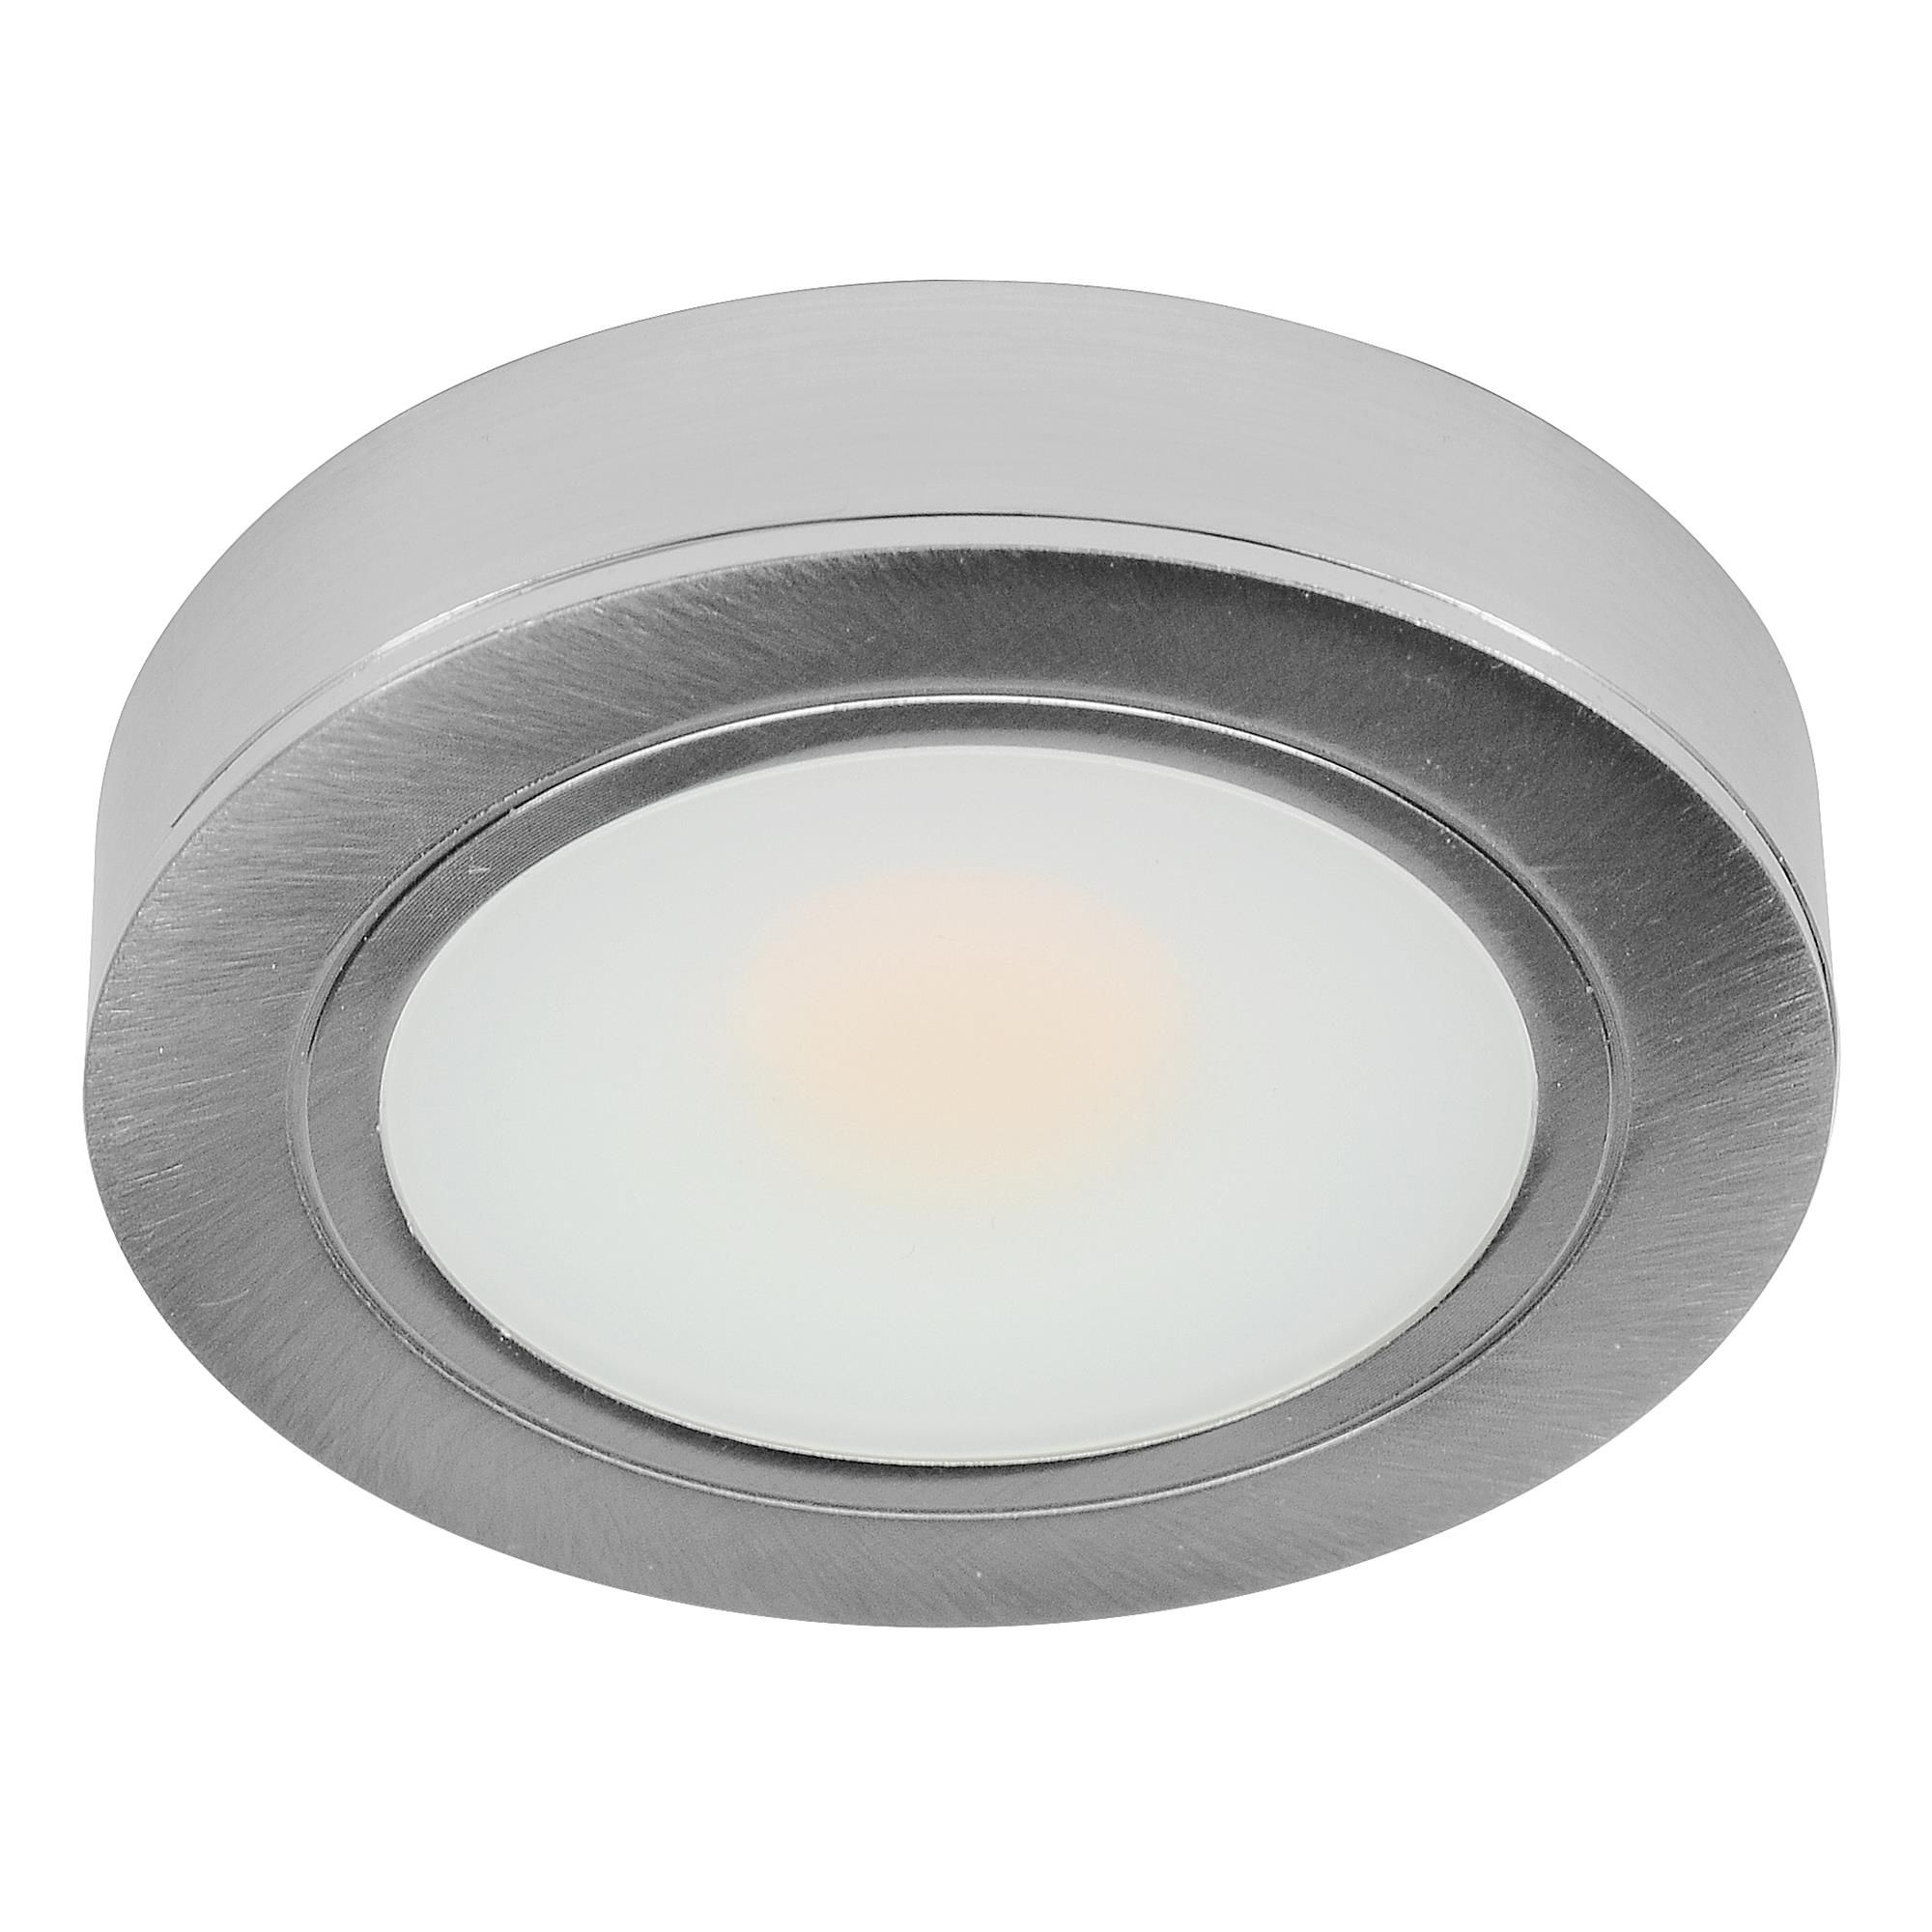 Led Cabinet Surfaced Downlight 3w Stainless Steel Downlights Led Spotlight Lamp